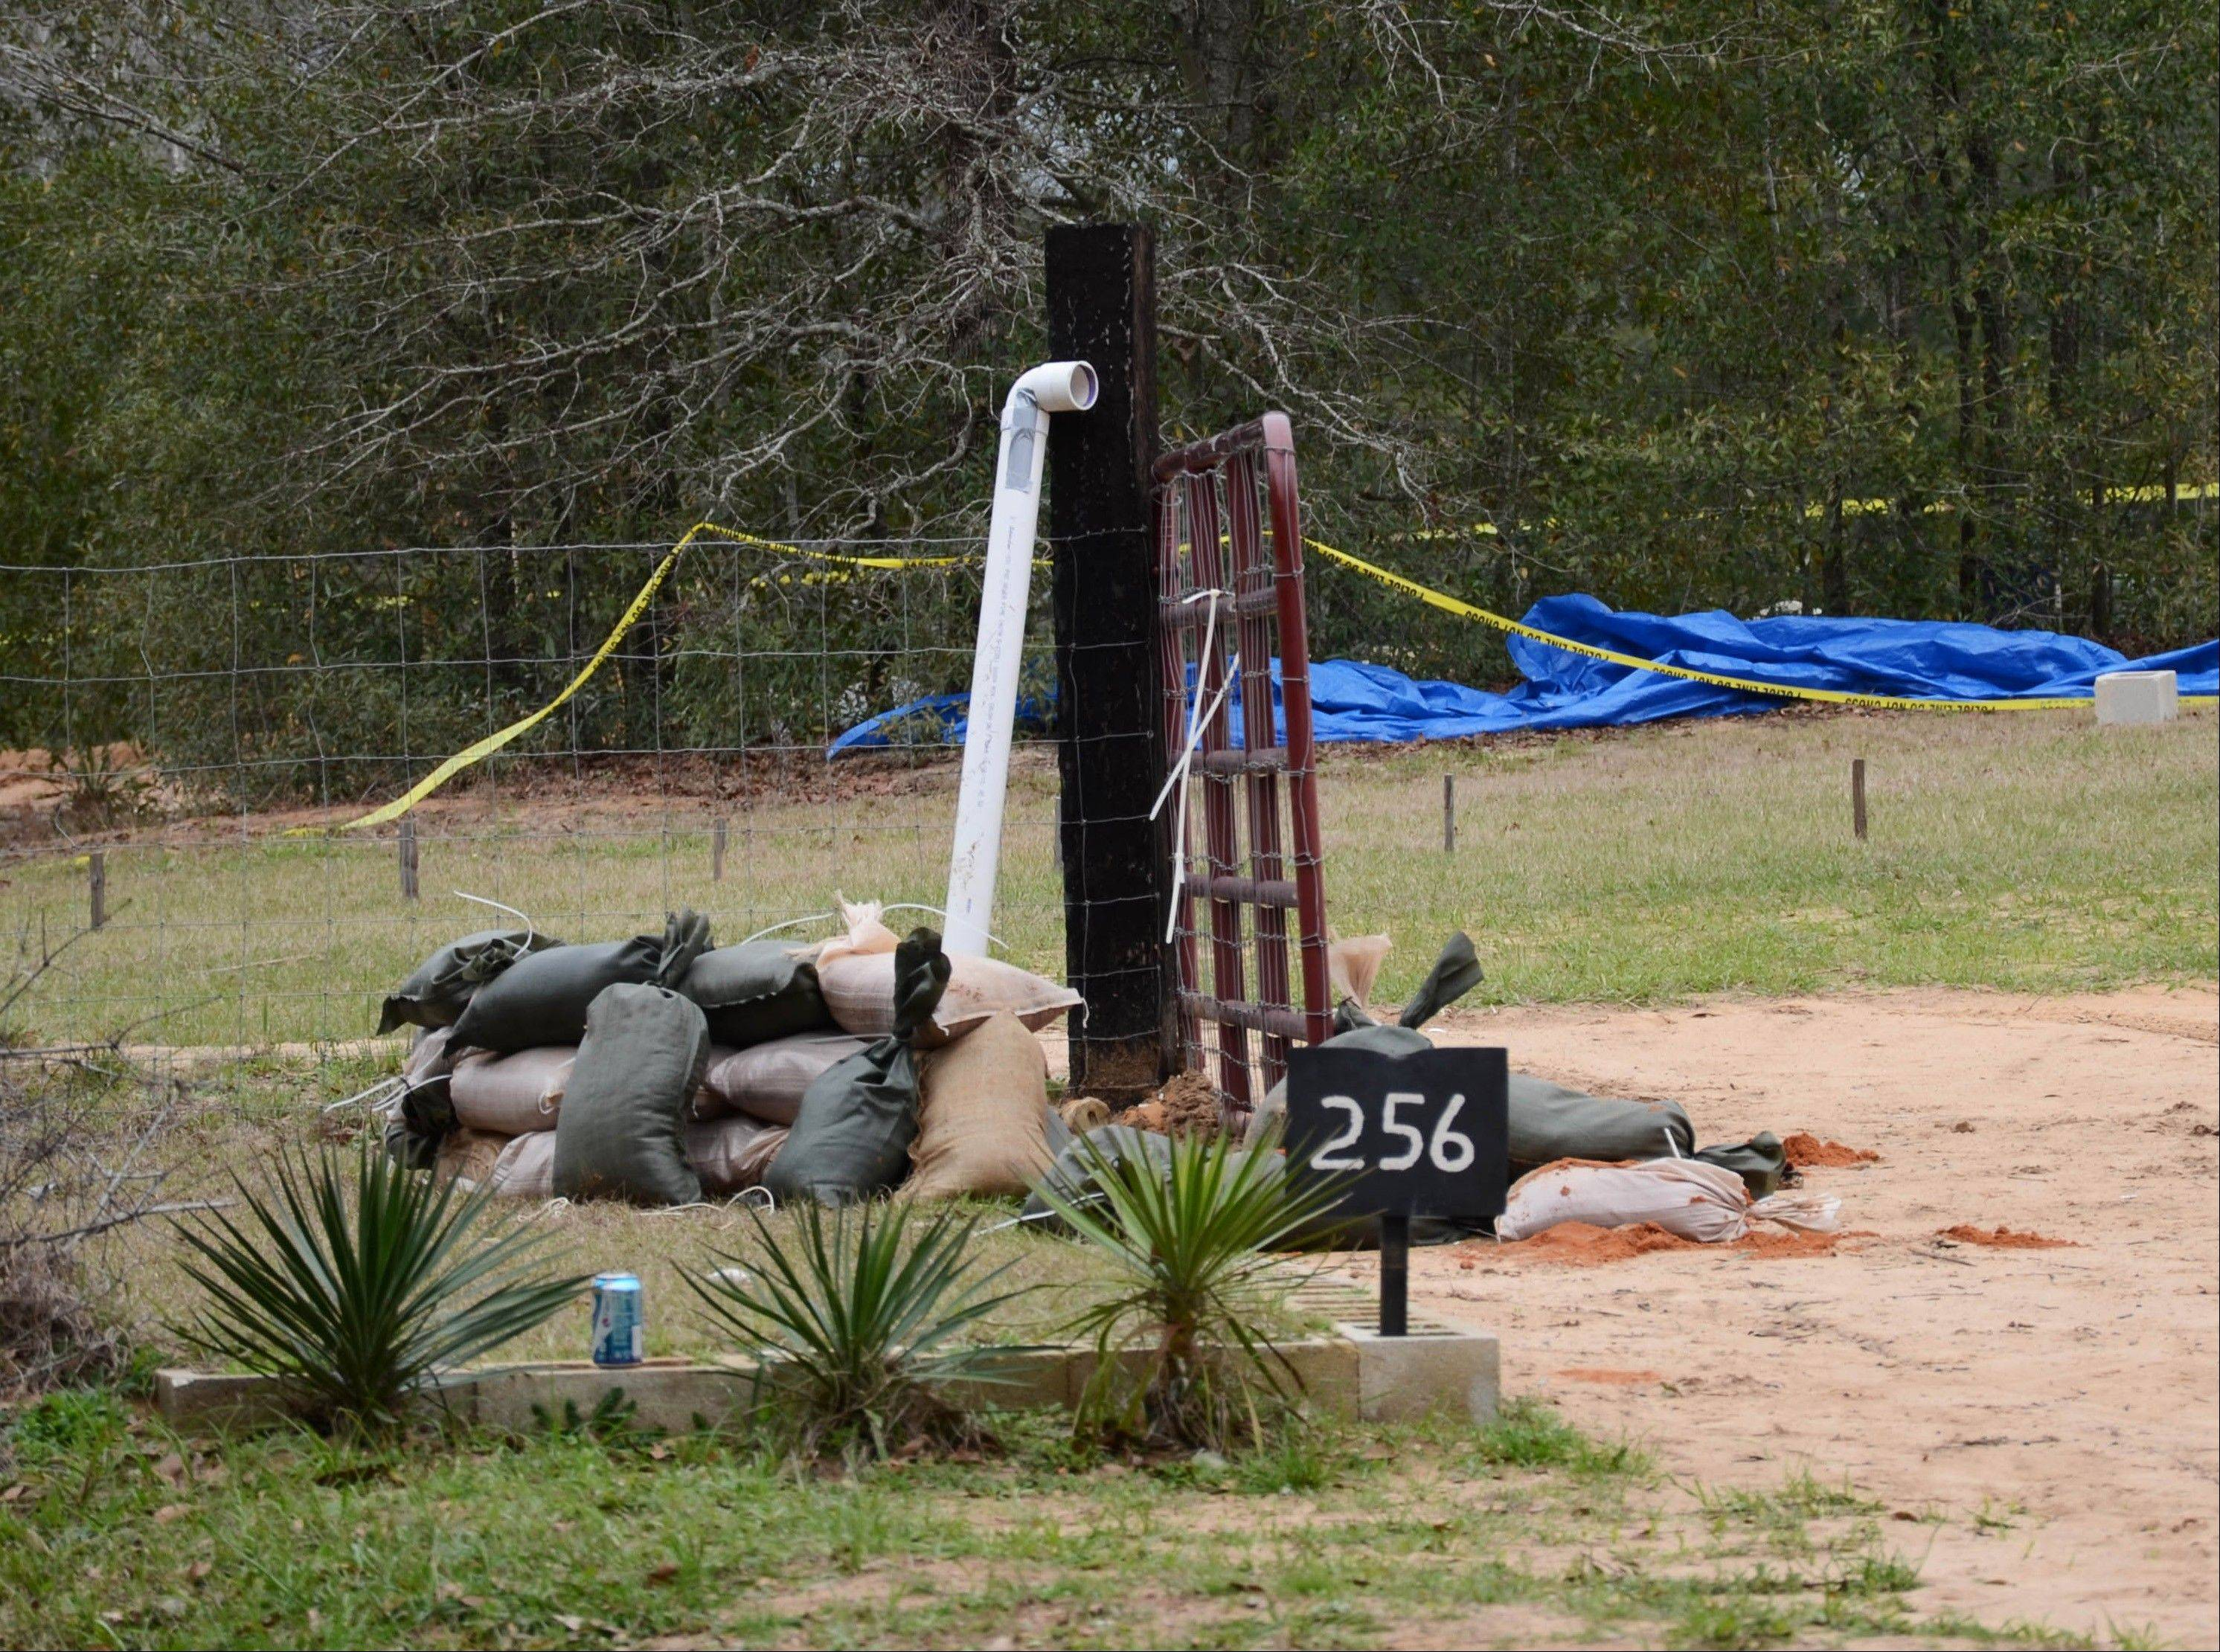 This undated photo released by the FBI on Tuesday shows the pipe FBI agents and negotiators used to communicate with Jimmy Lee Dykes as he held a 5-year-old boy hostage in a bunker on his Midland City, Ala., property for a week. The pipe was also used to send food, medicine and other items into the bunker. The boy was rescued and his captor was killed when federal agents raided the bunker on Monday.